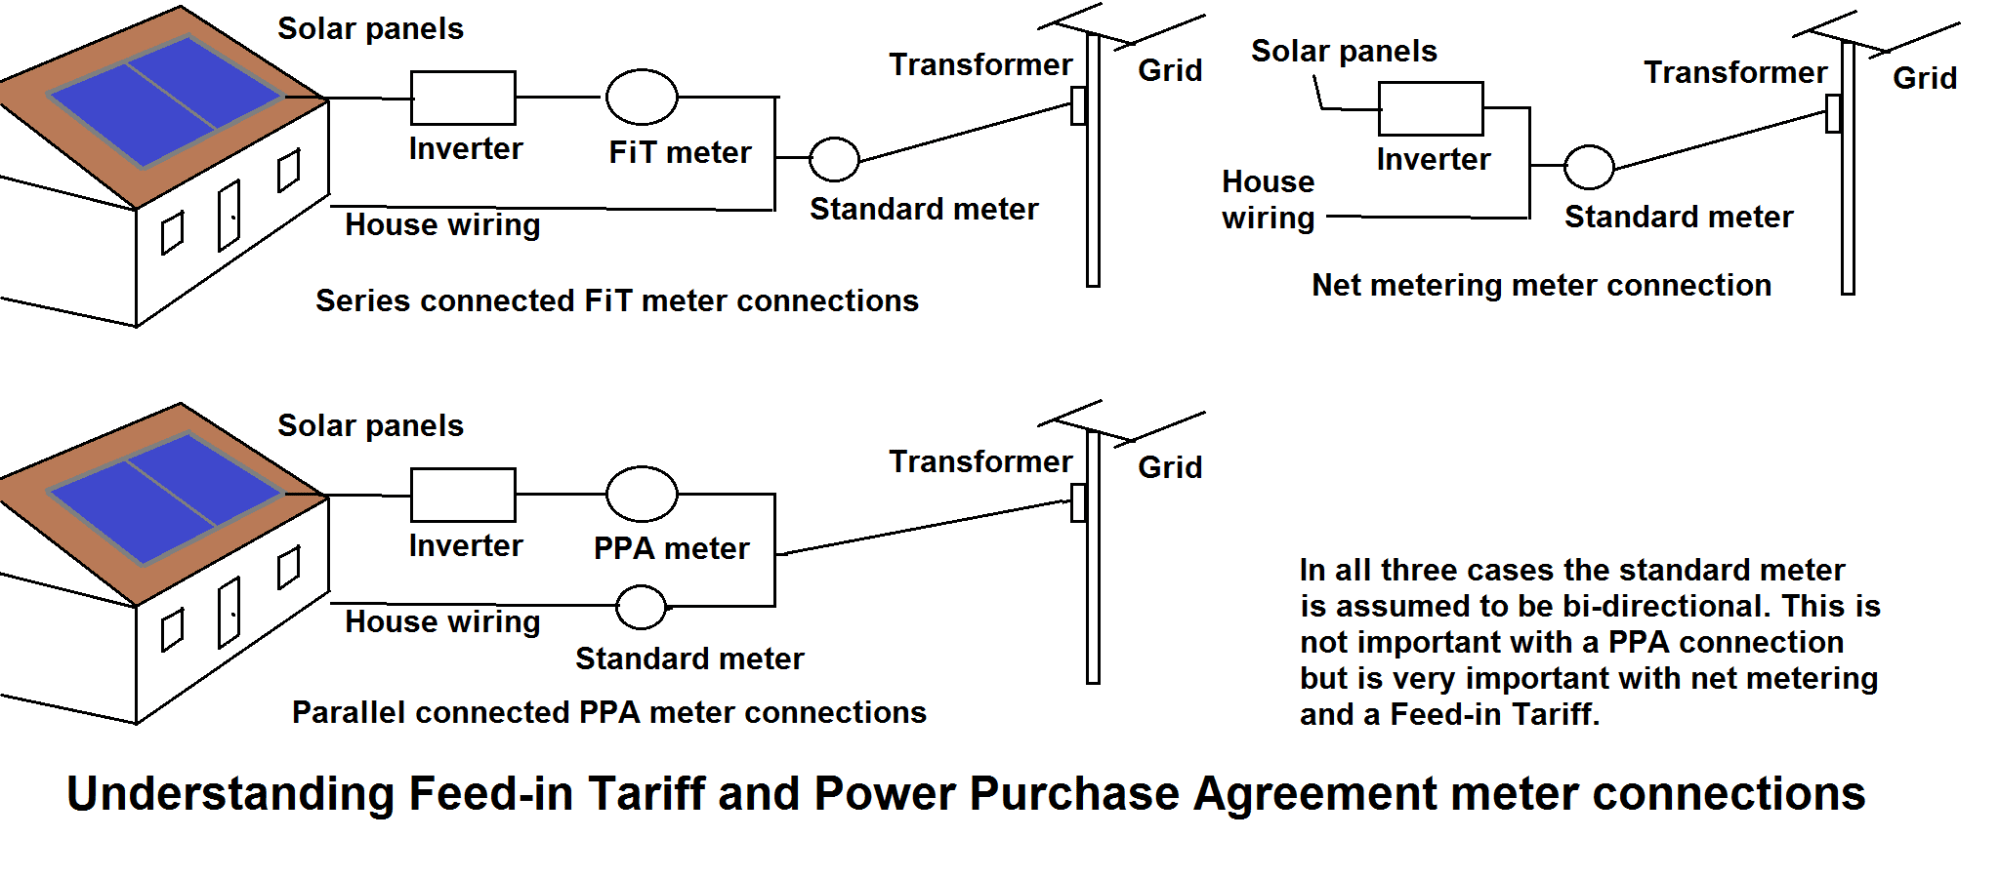 hight resolution of file feed in tariff meter connections png wikipedia shunt amp meter wiring diagram file feed in